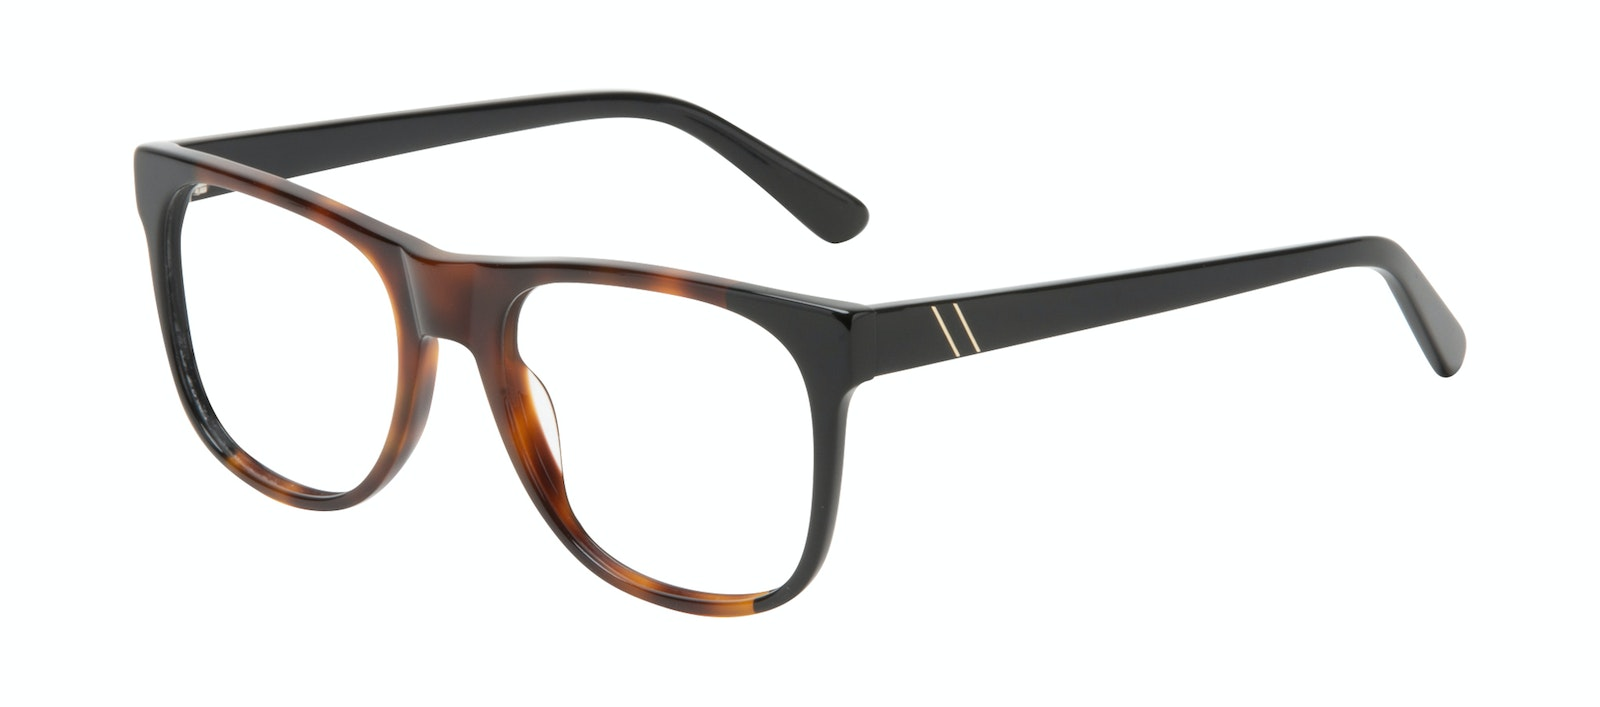 Affordable Fashion Glasses Square Eyeglasses Men Make Black Tort Tilt